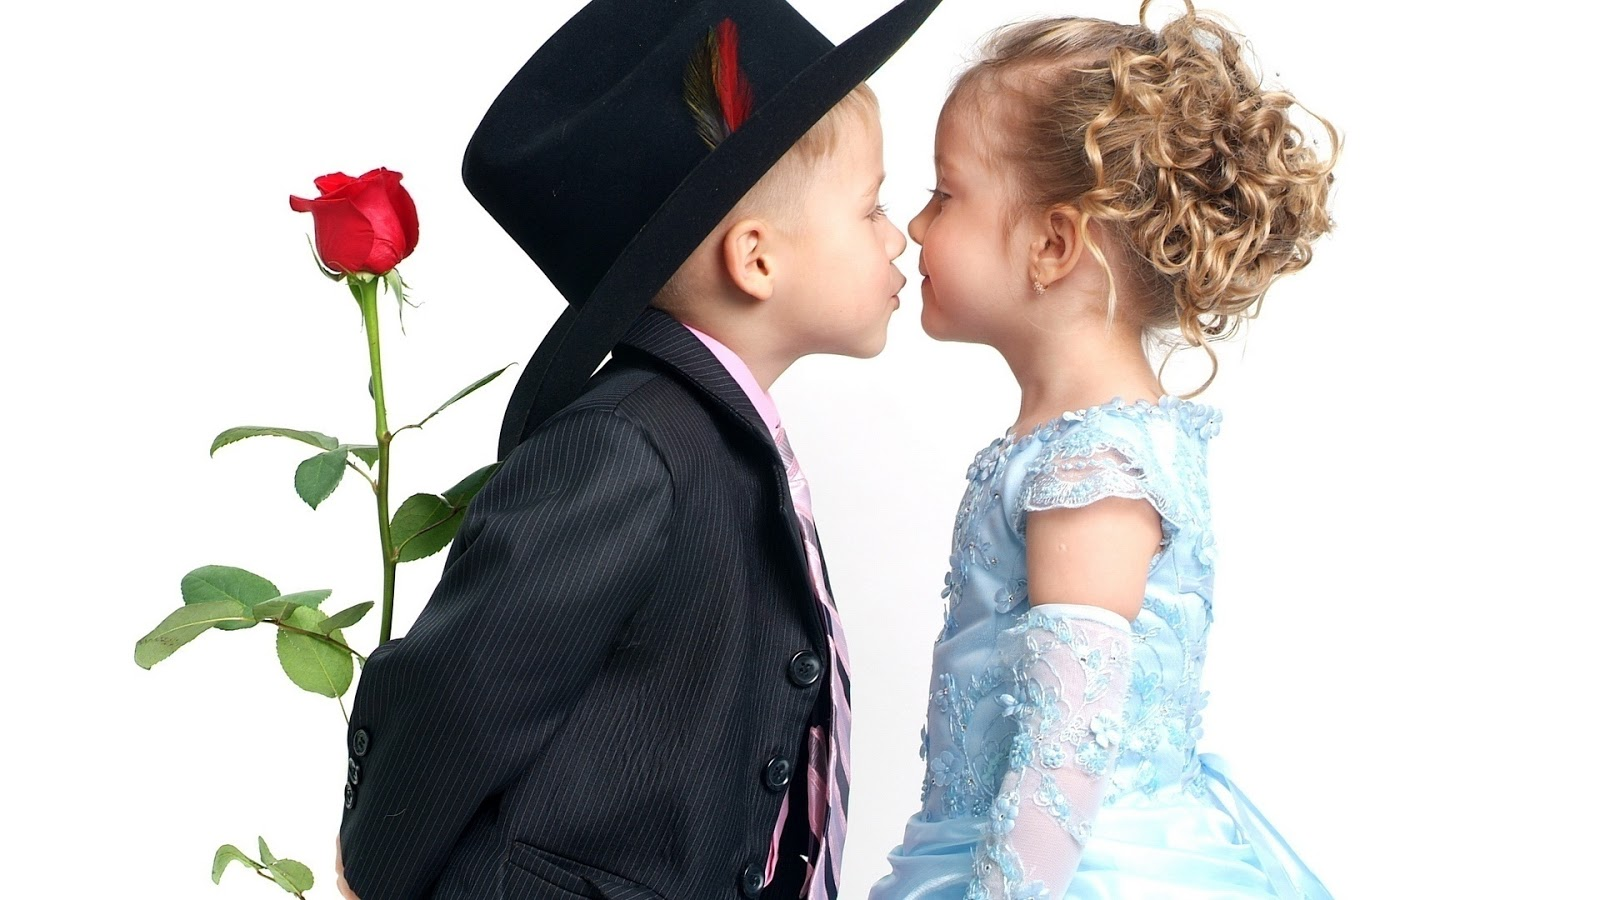 10+ cutest children love kissing images - freshmorningquotes